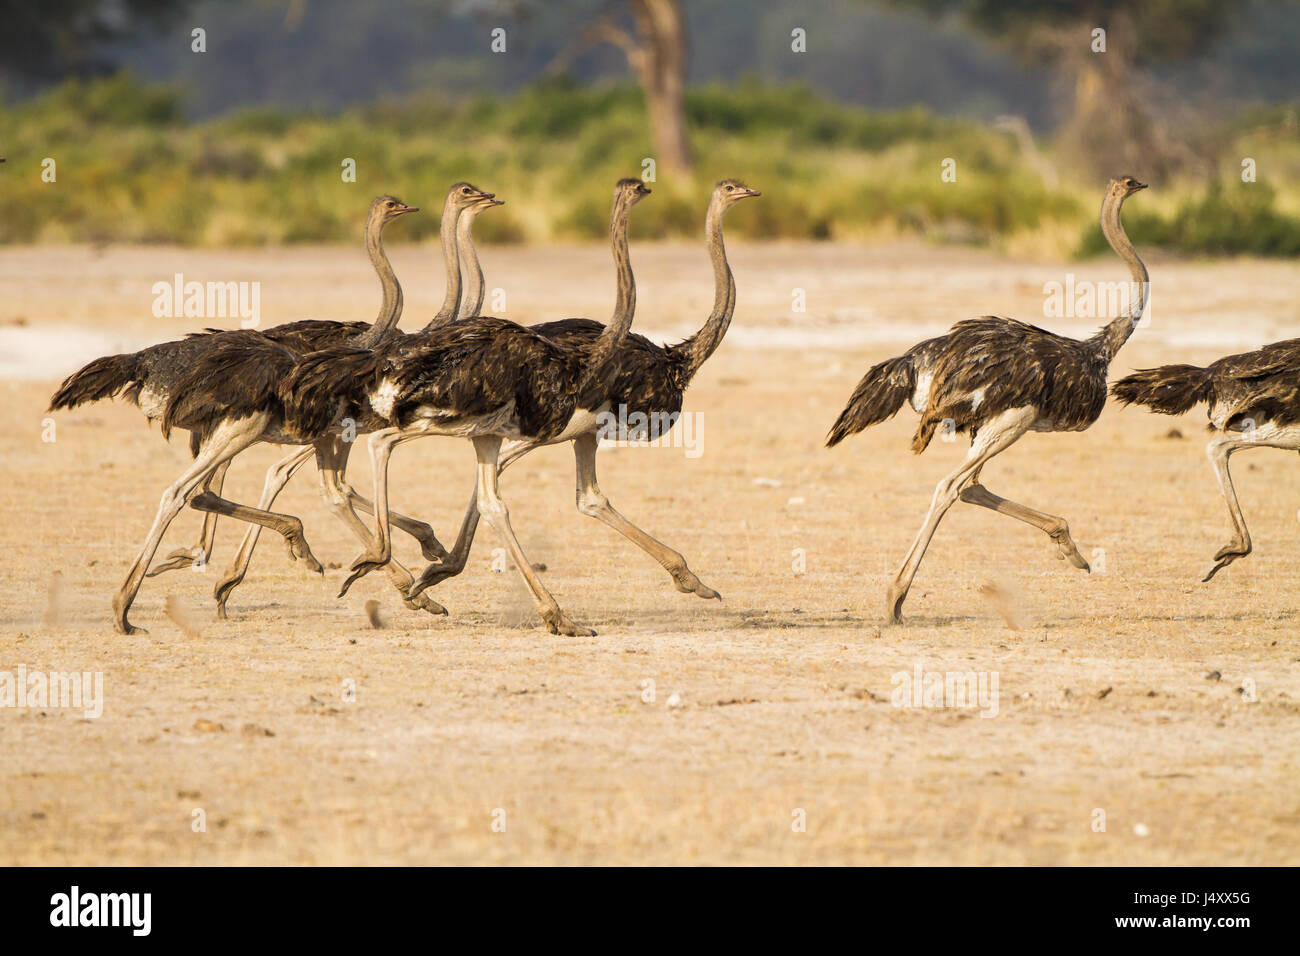 A flock of ostriches run across the foothills of Kilamajaro - Stock Image